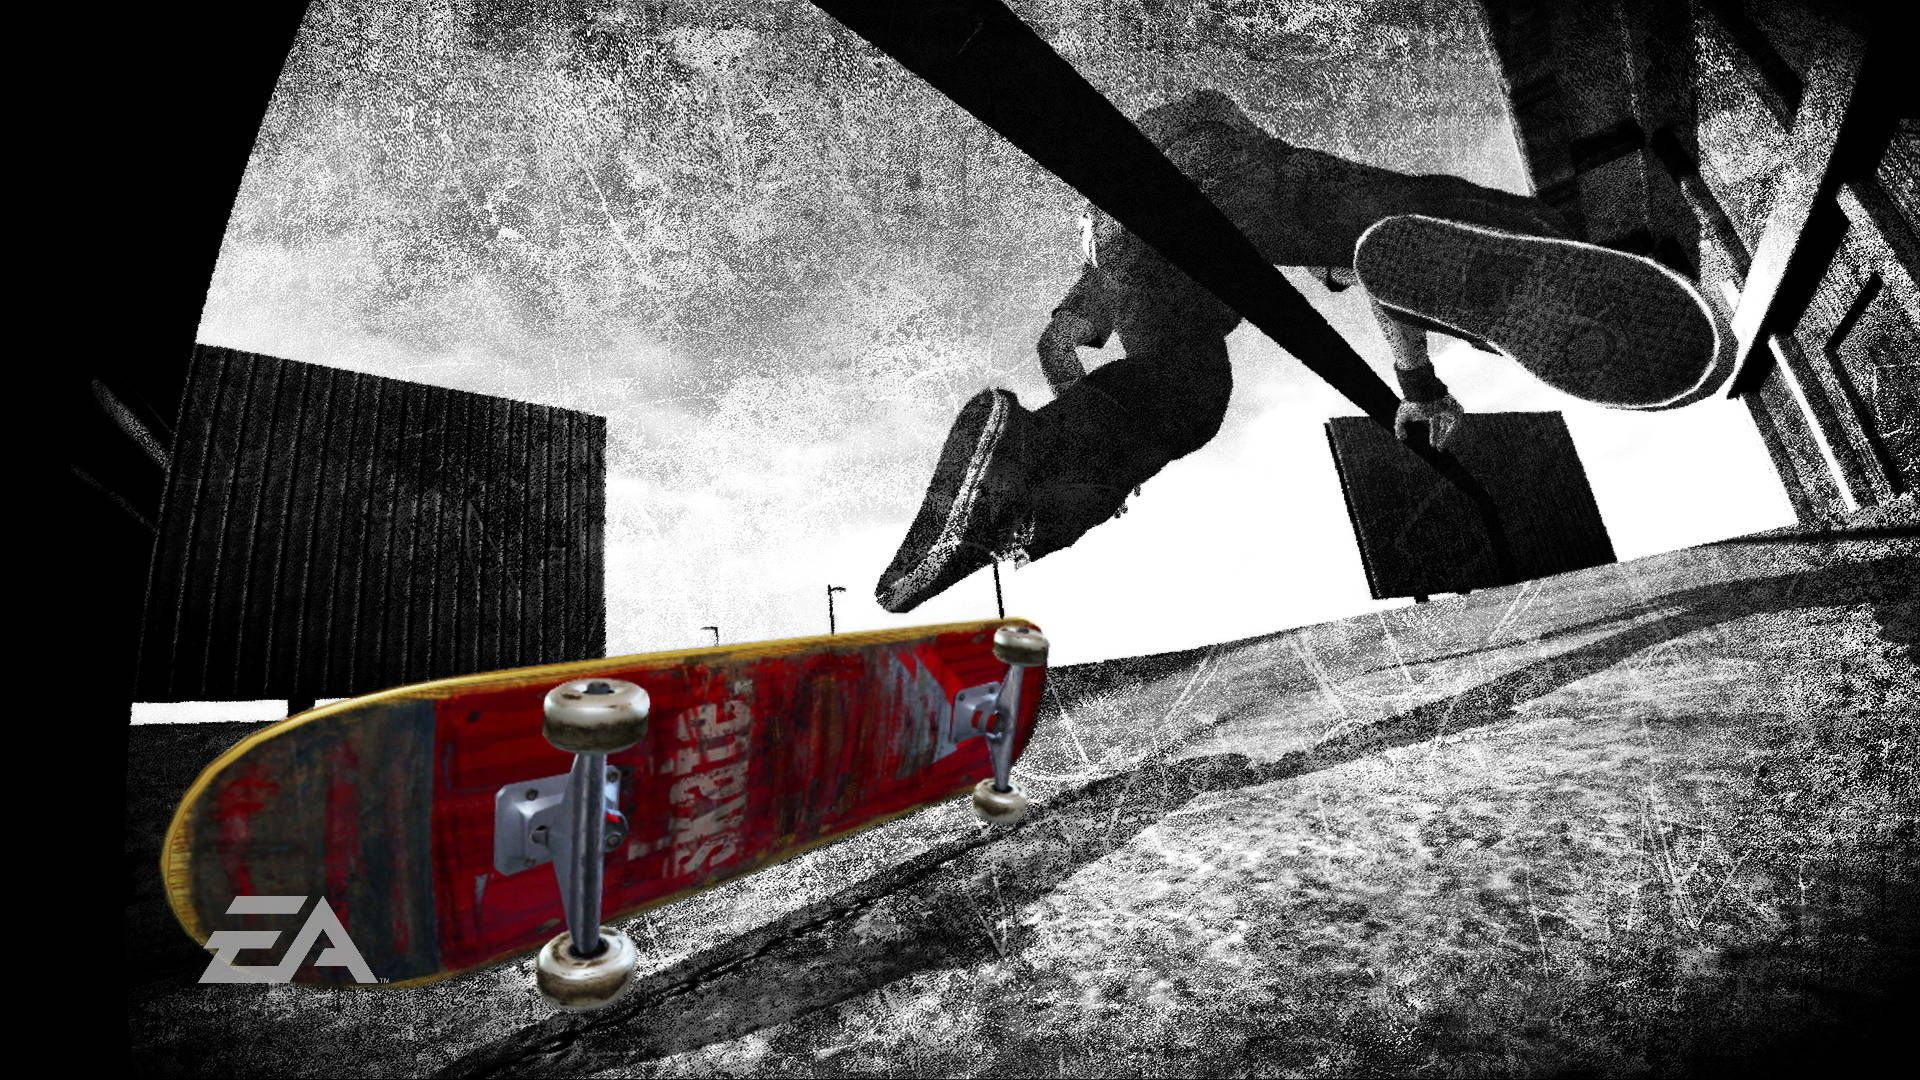 Skate Wallpaper Desktop 1920×1080 Skate Wallpaper (37